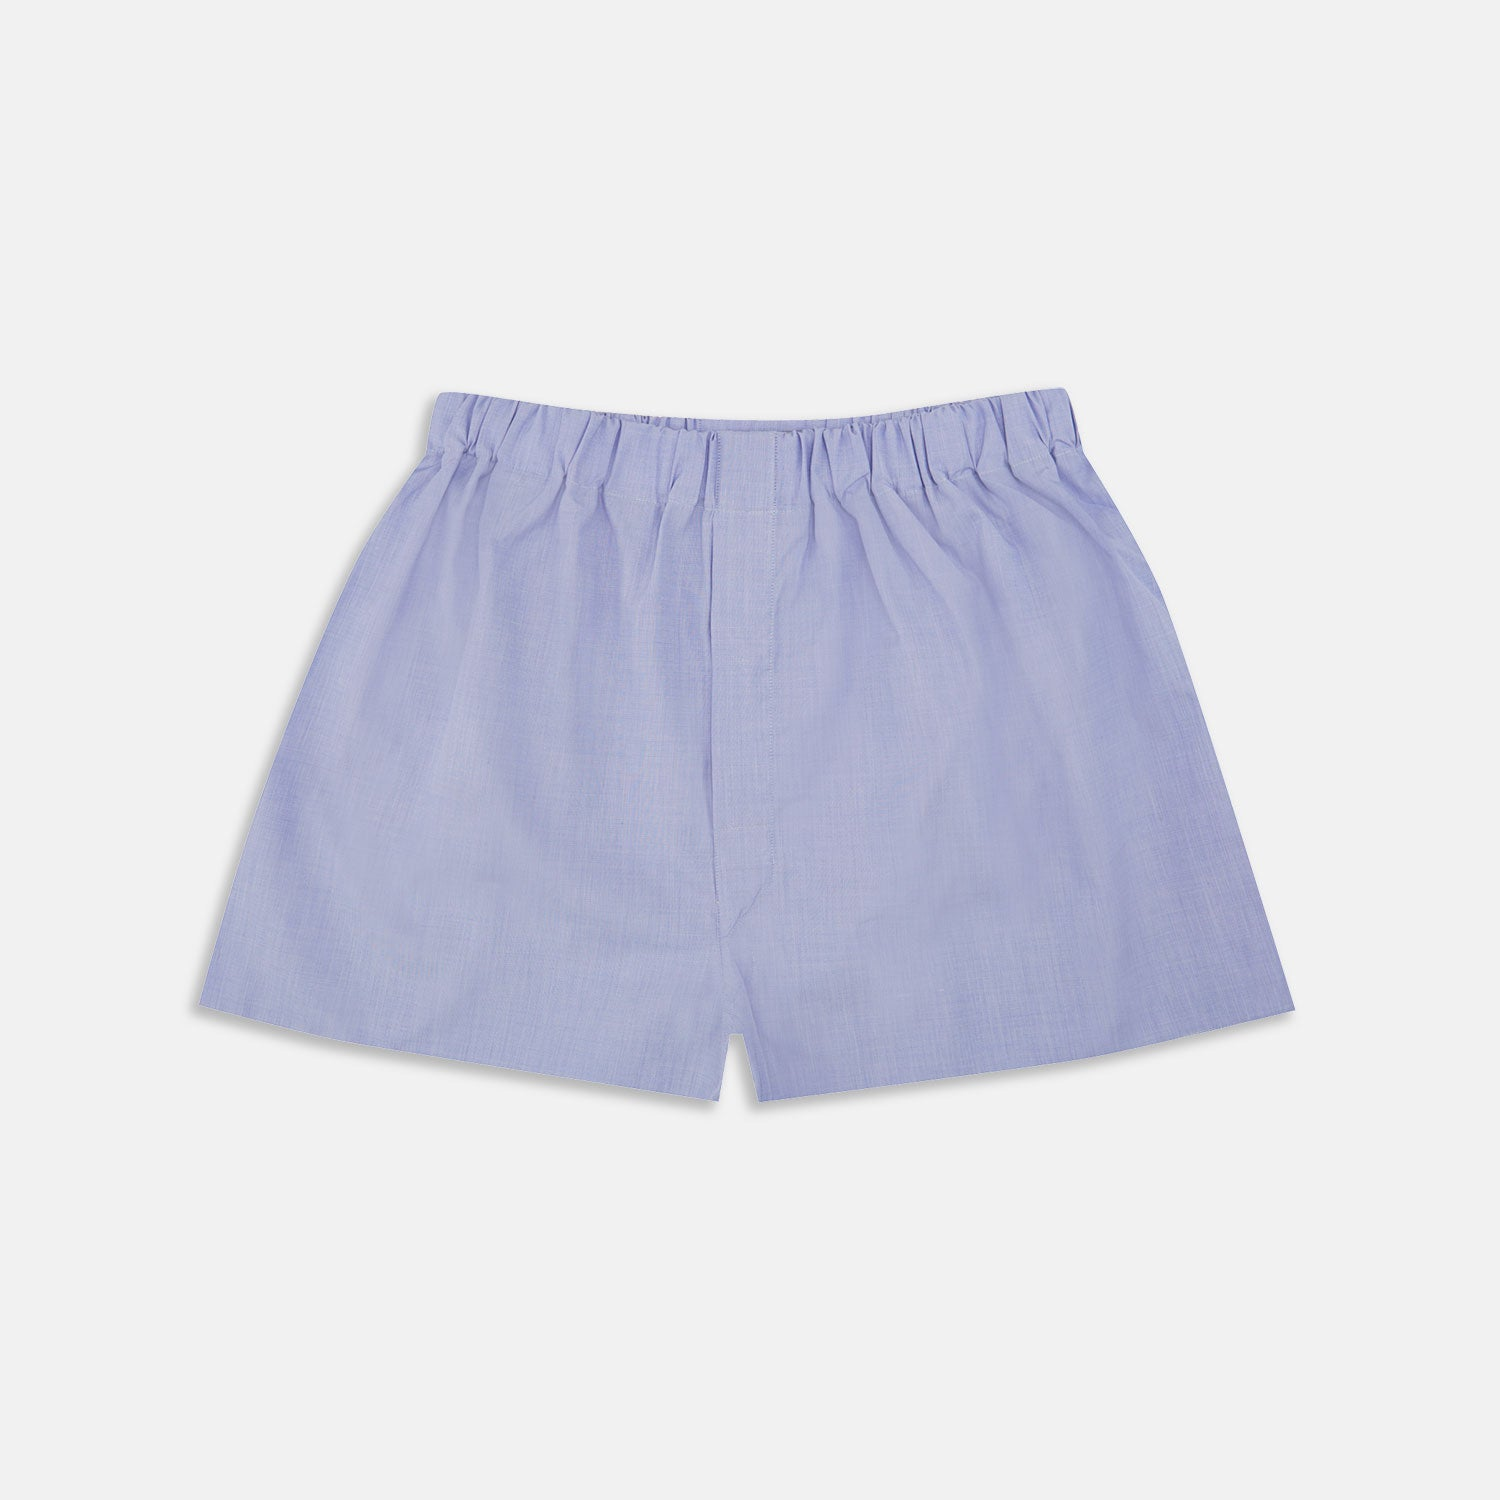 Blue End-On-End Cotton Boxer Shorts